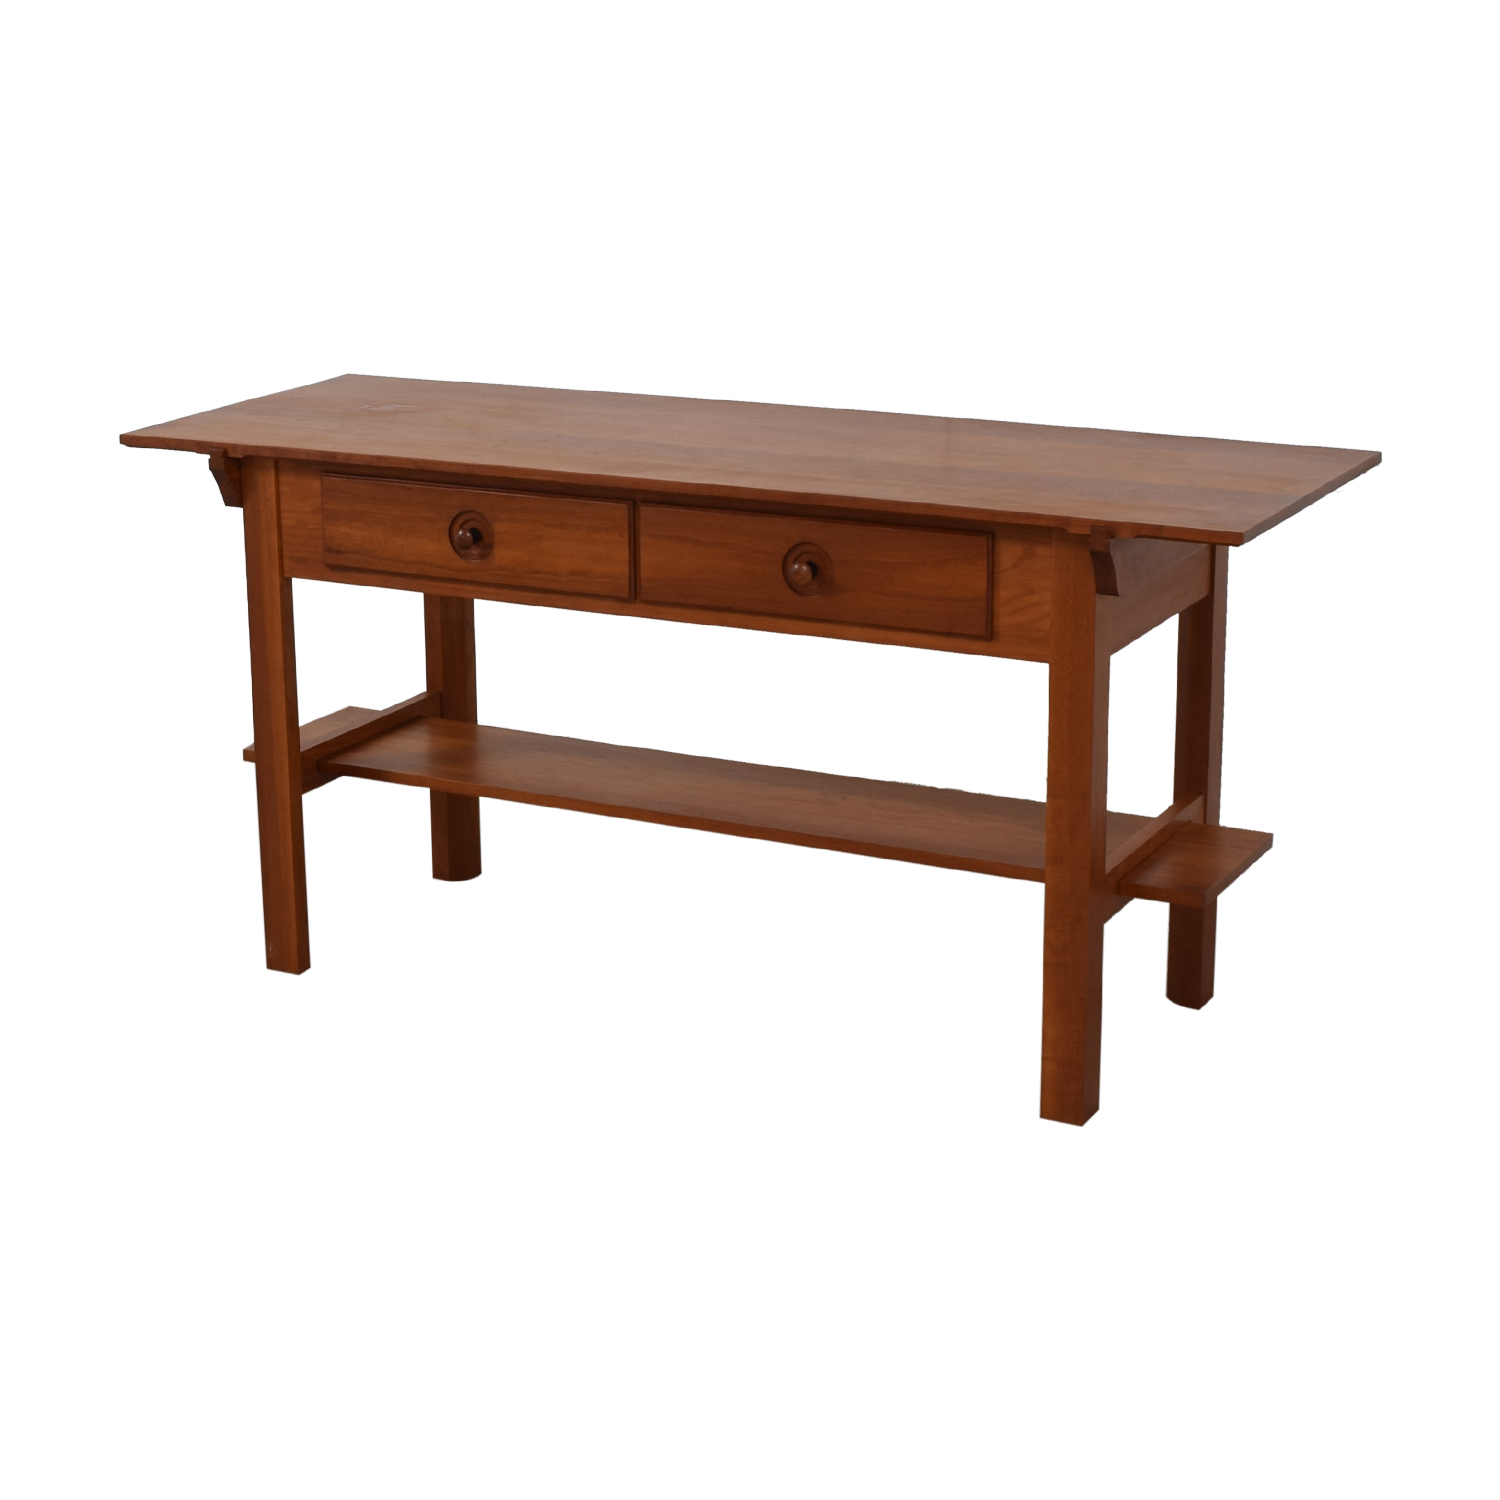 Scott Jordon Scott Jordon Wood Two-Drawer Utility Table for sale